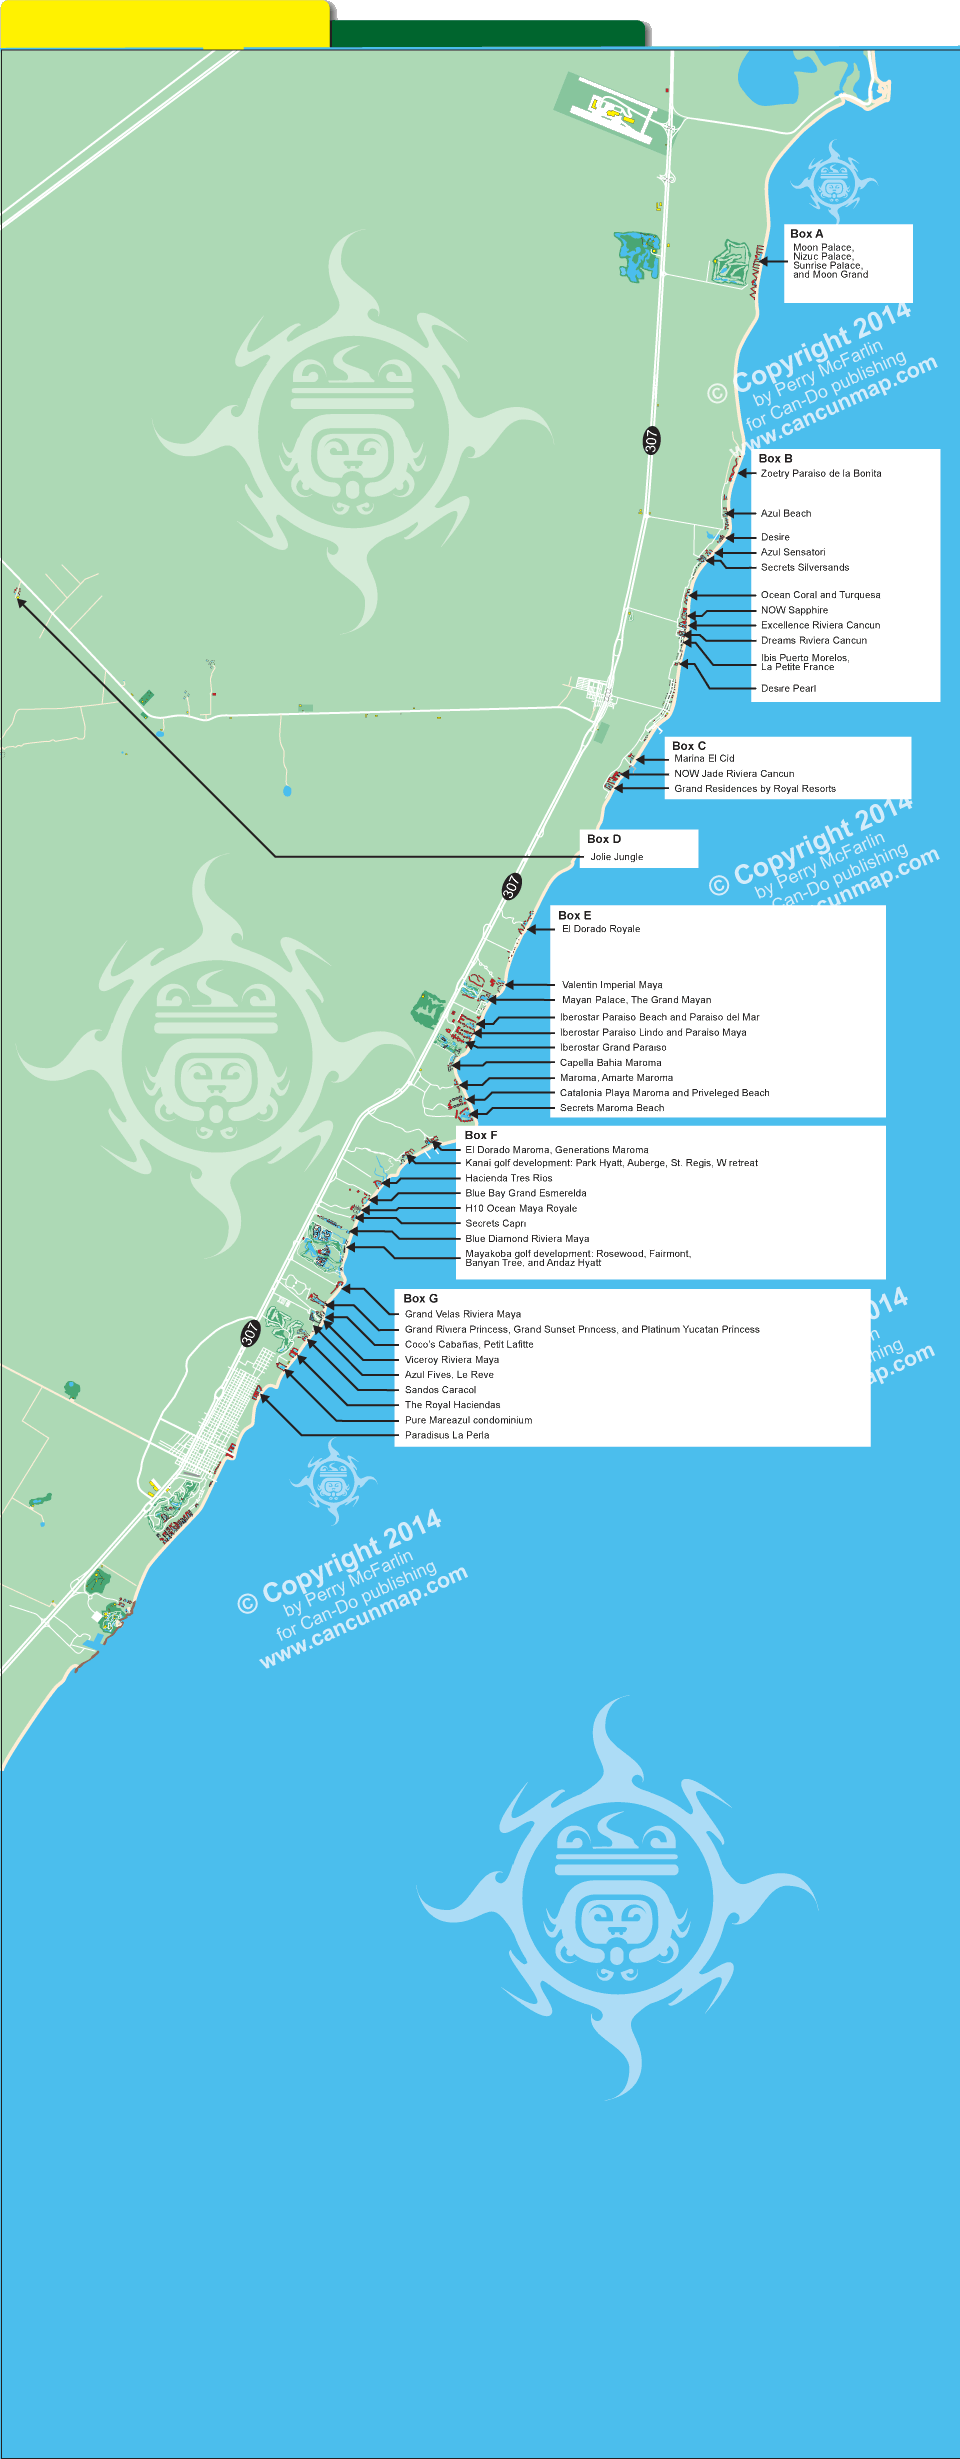 Map Of Downtown Isla Mujeres Hotel Locations. Mexico